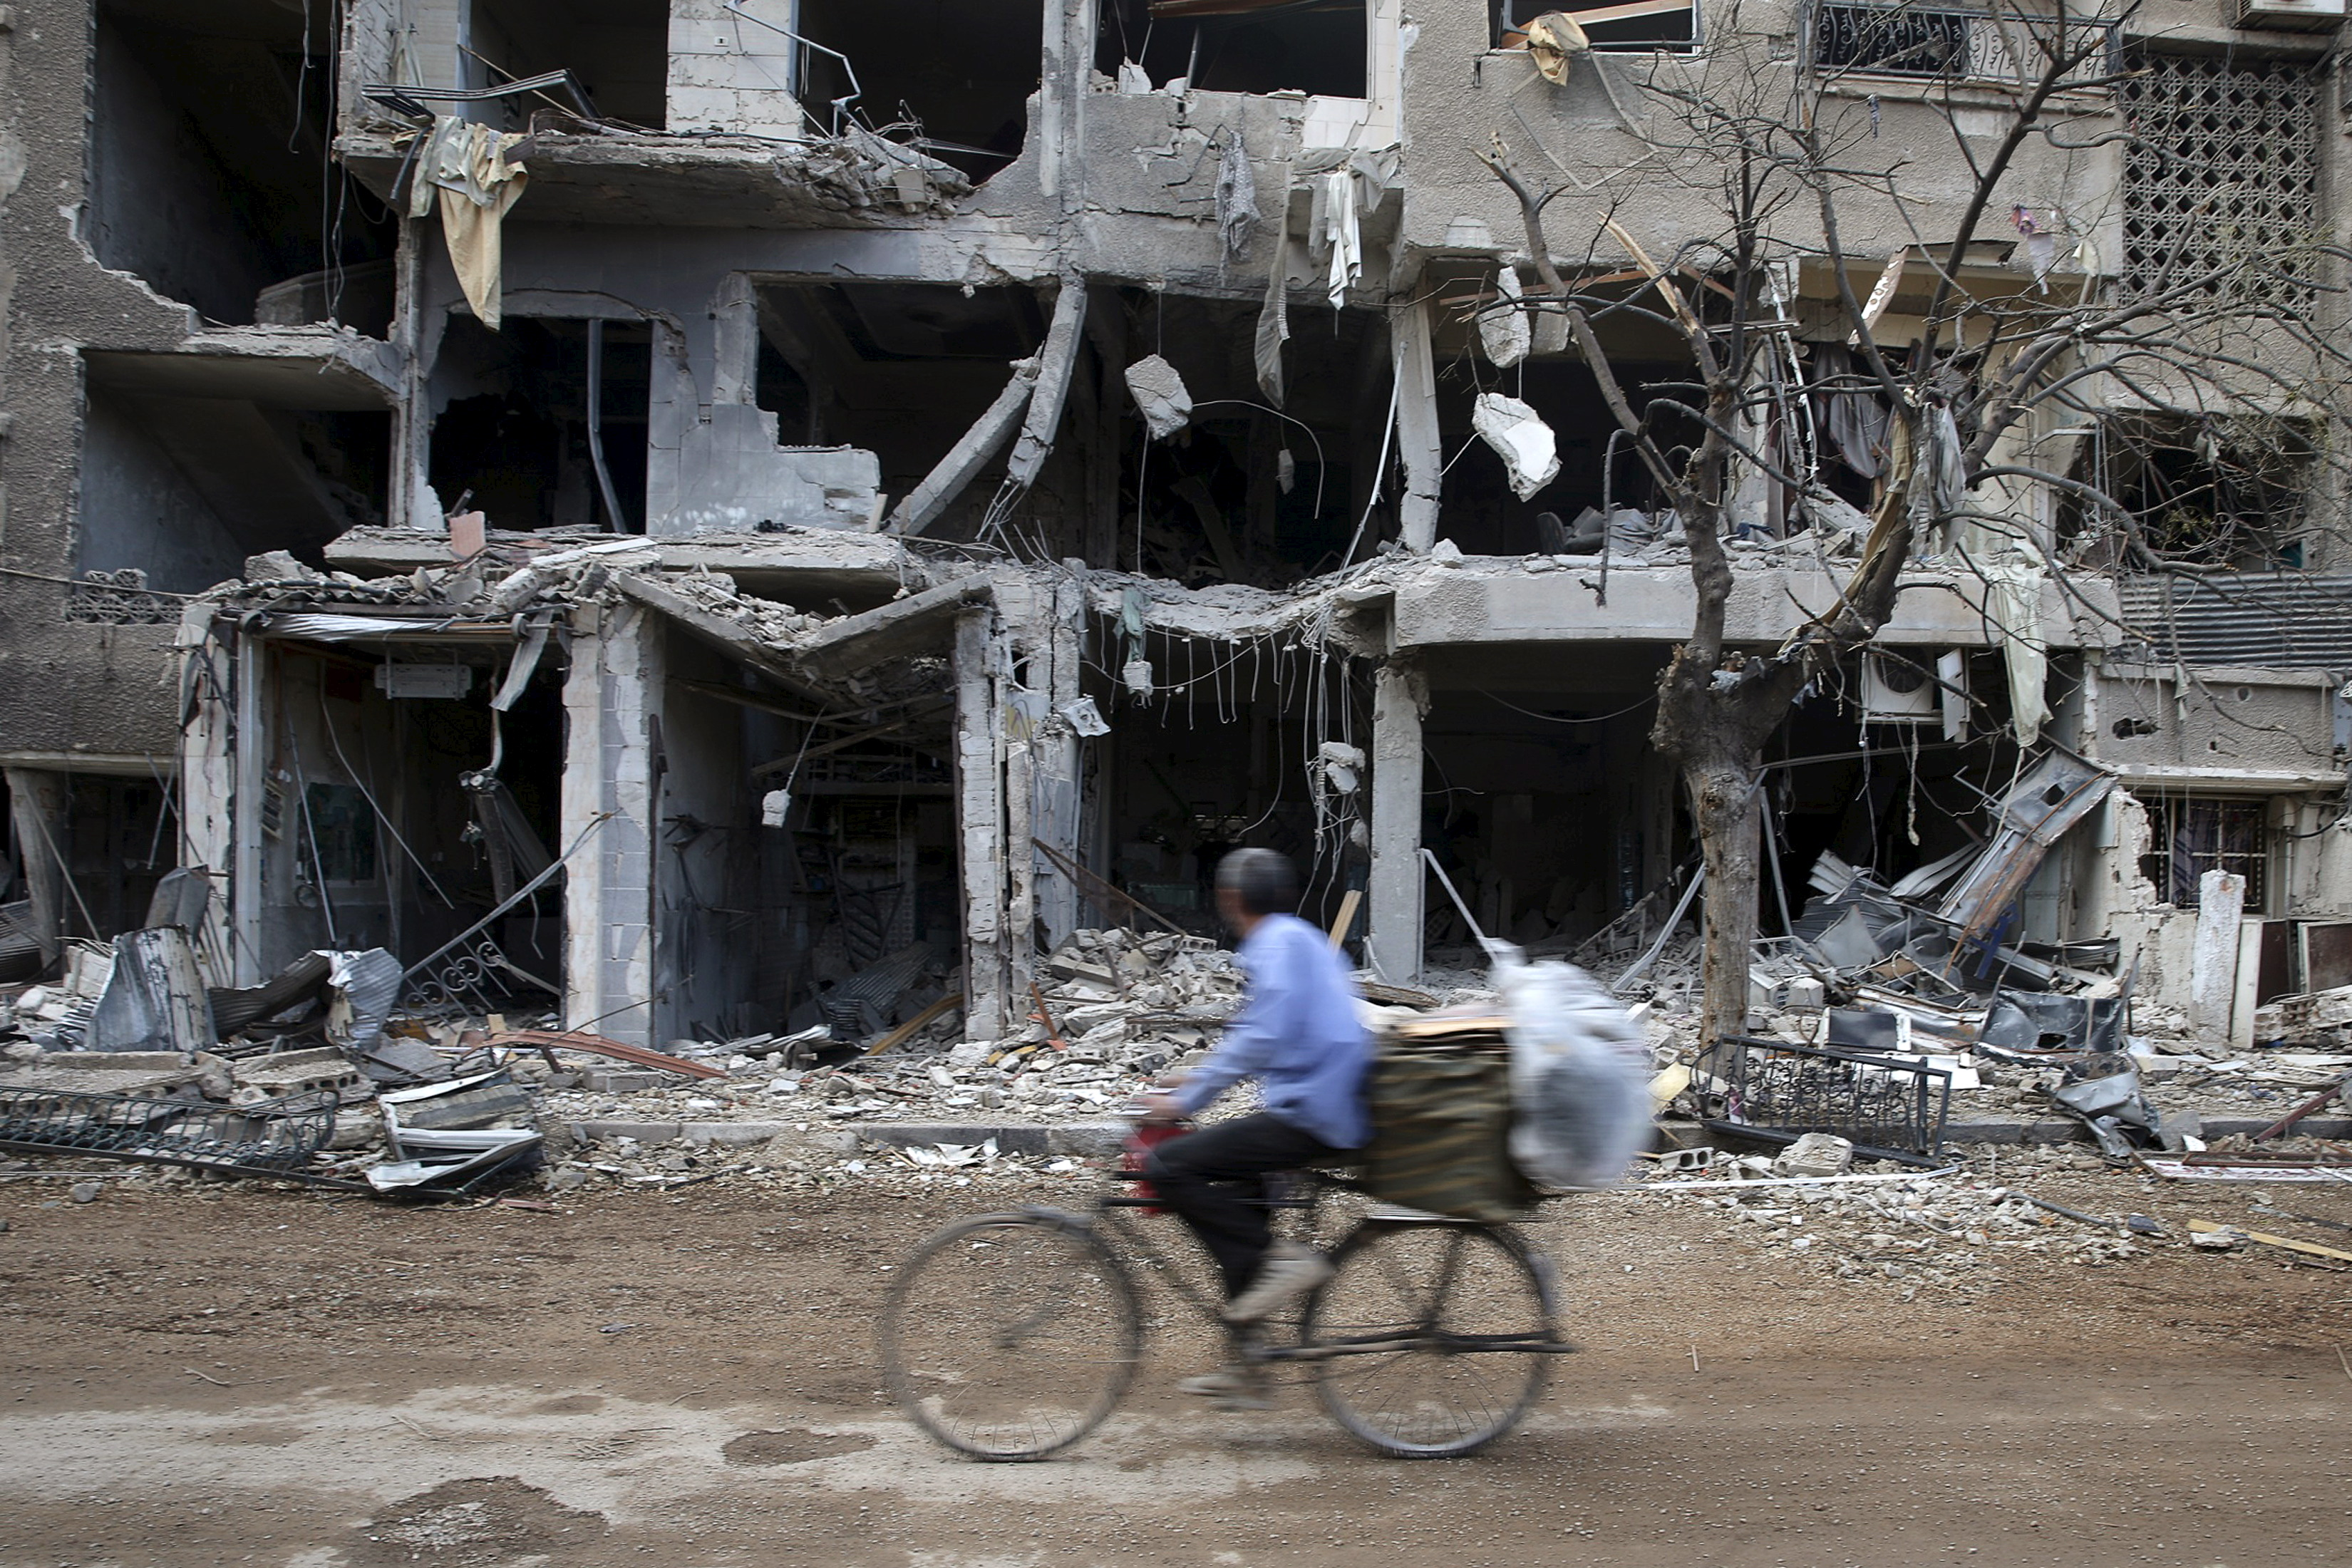 A man rides a bicycle near damaged buildings in Jobar, a suburb of Damascus, Syria, Oct. 27, 2015.